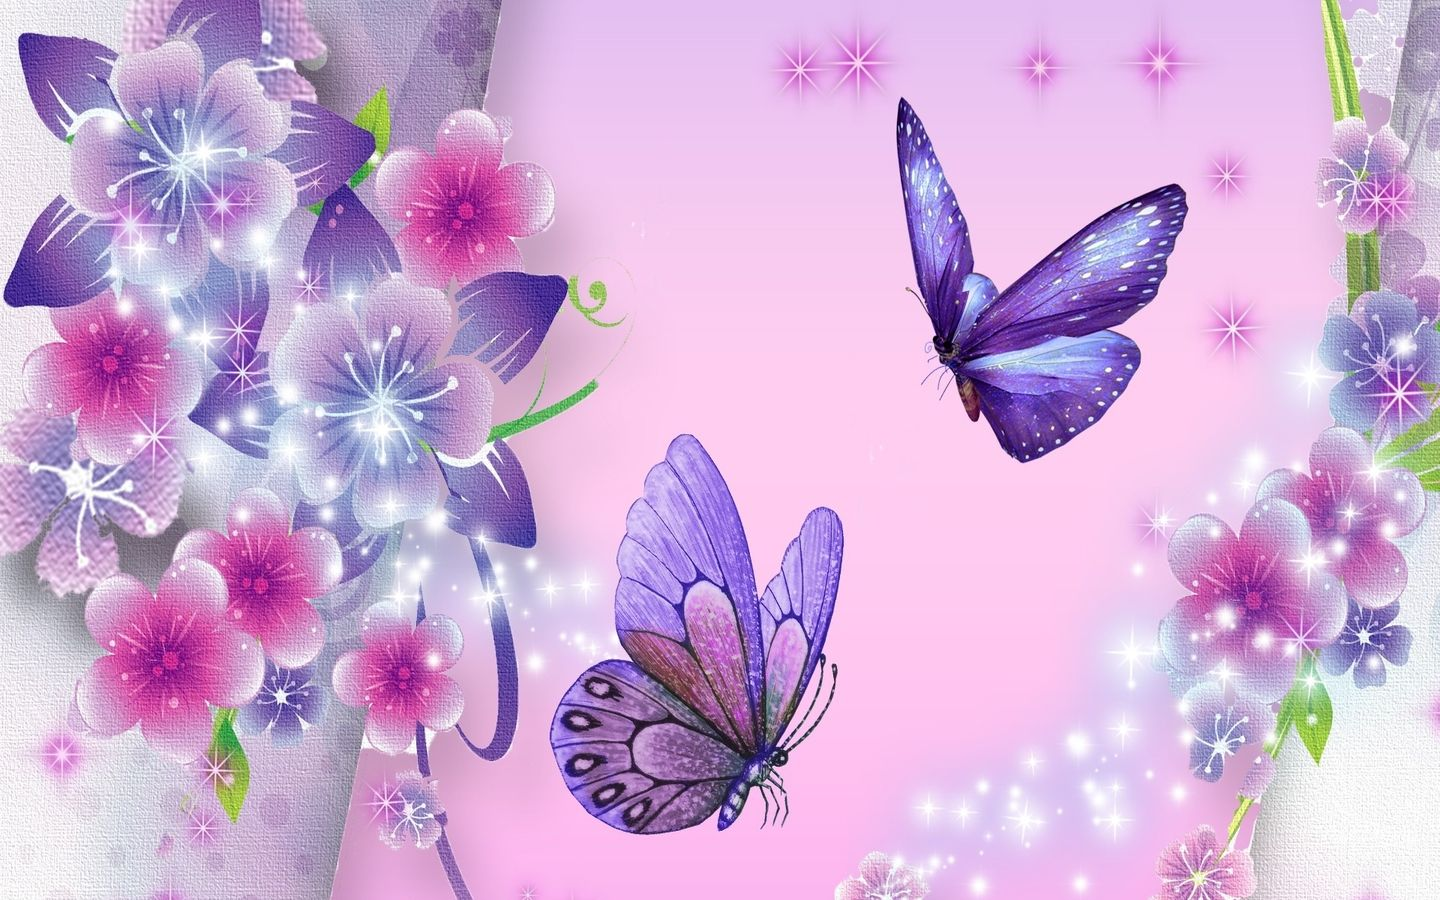 Wallpaper Iphone Aesthetic A Butterfly Total Update